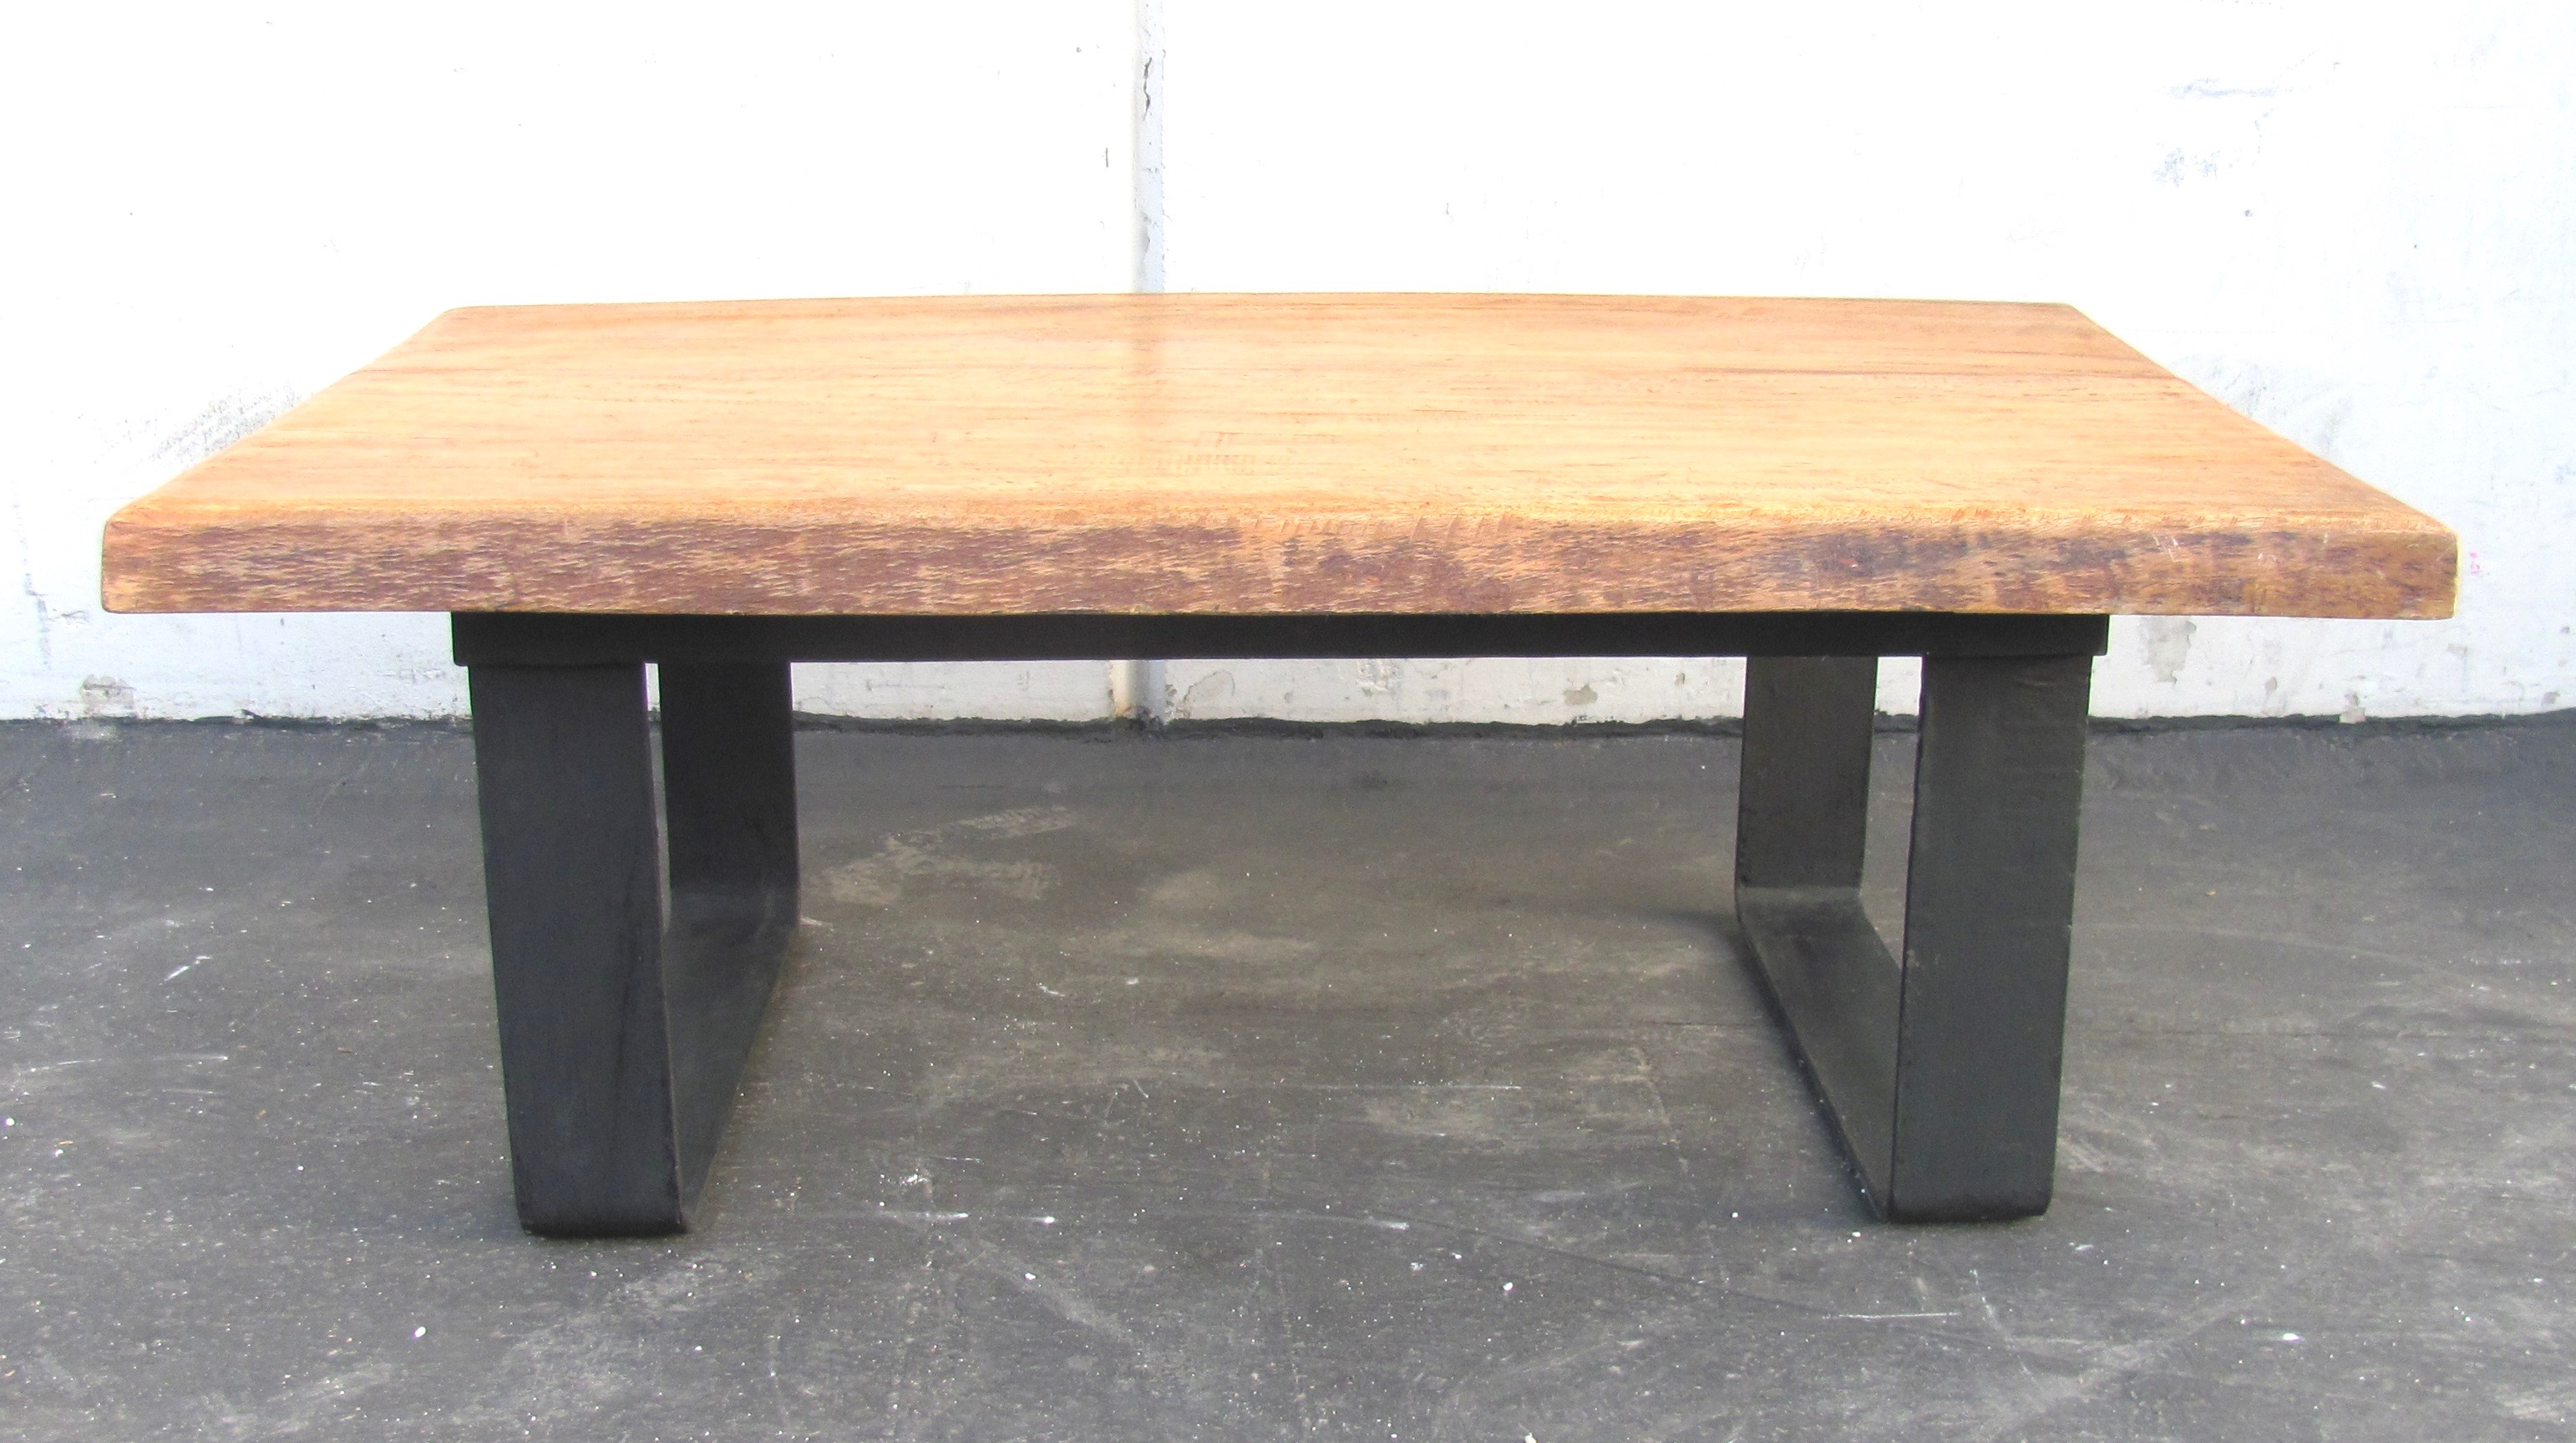 ... Coffee Table For Sale. Gorgeous Use Of Natural Cut Of Wood Slab. This Minimalist  Modern Style Of The Black